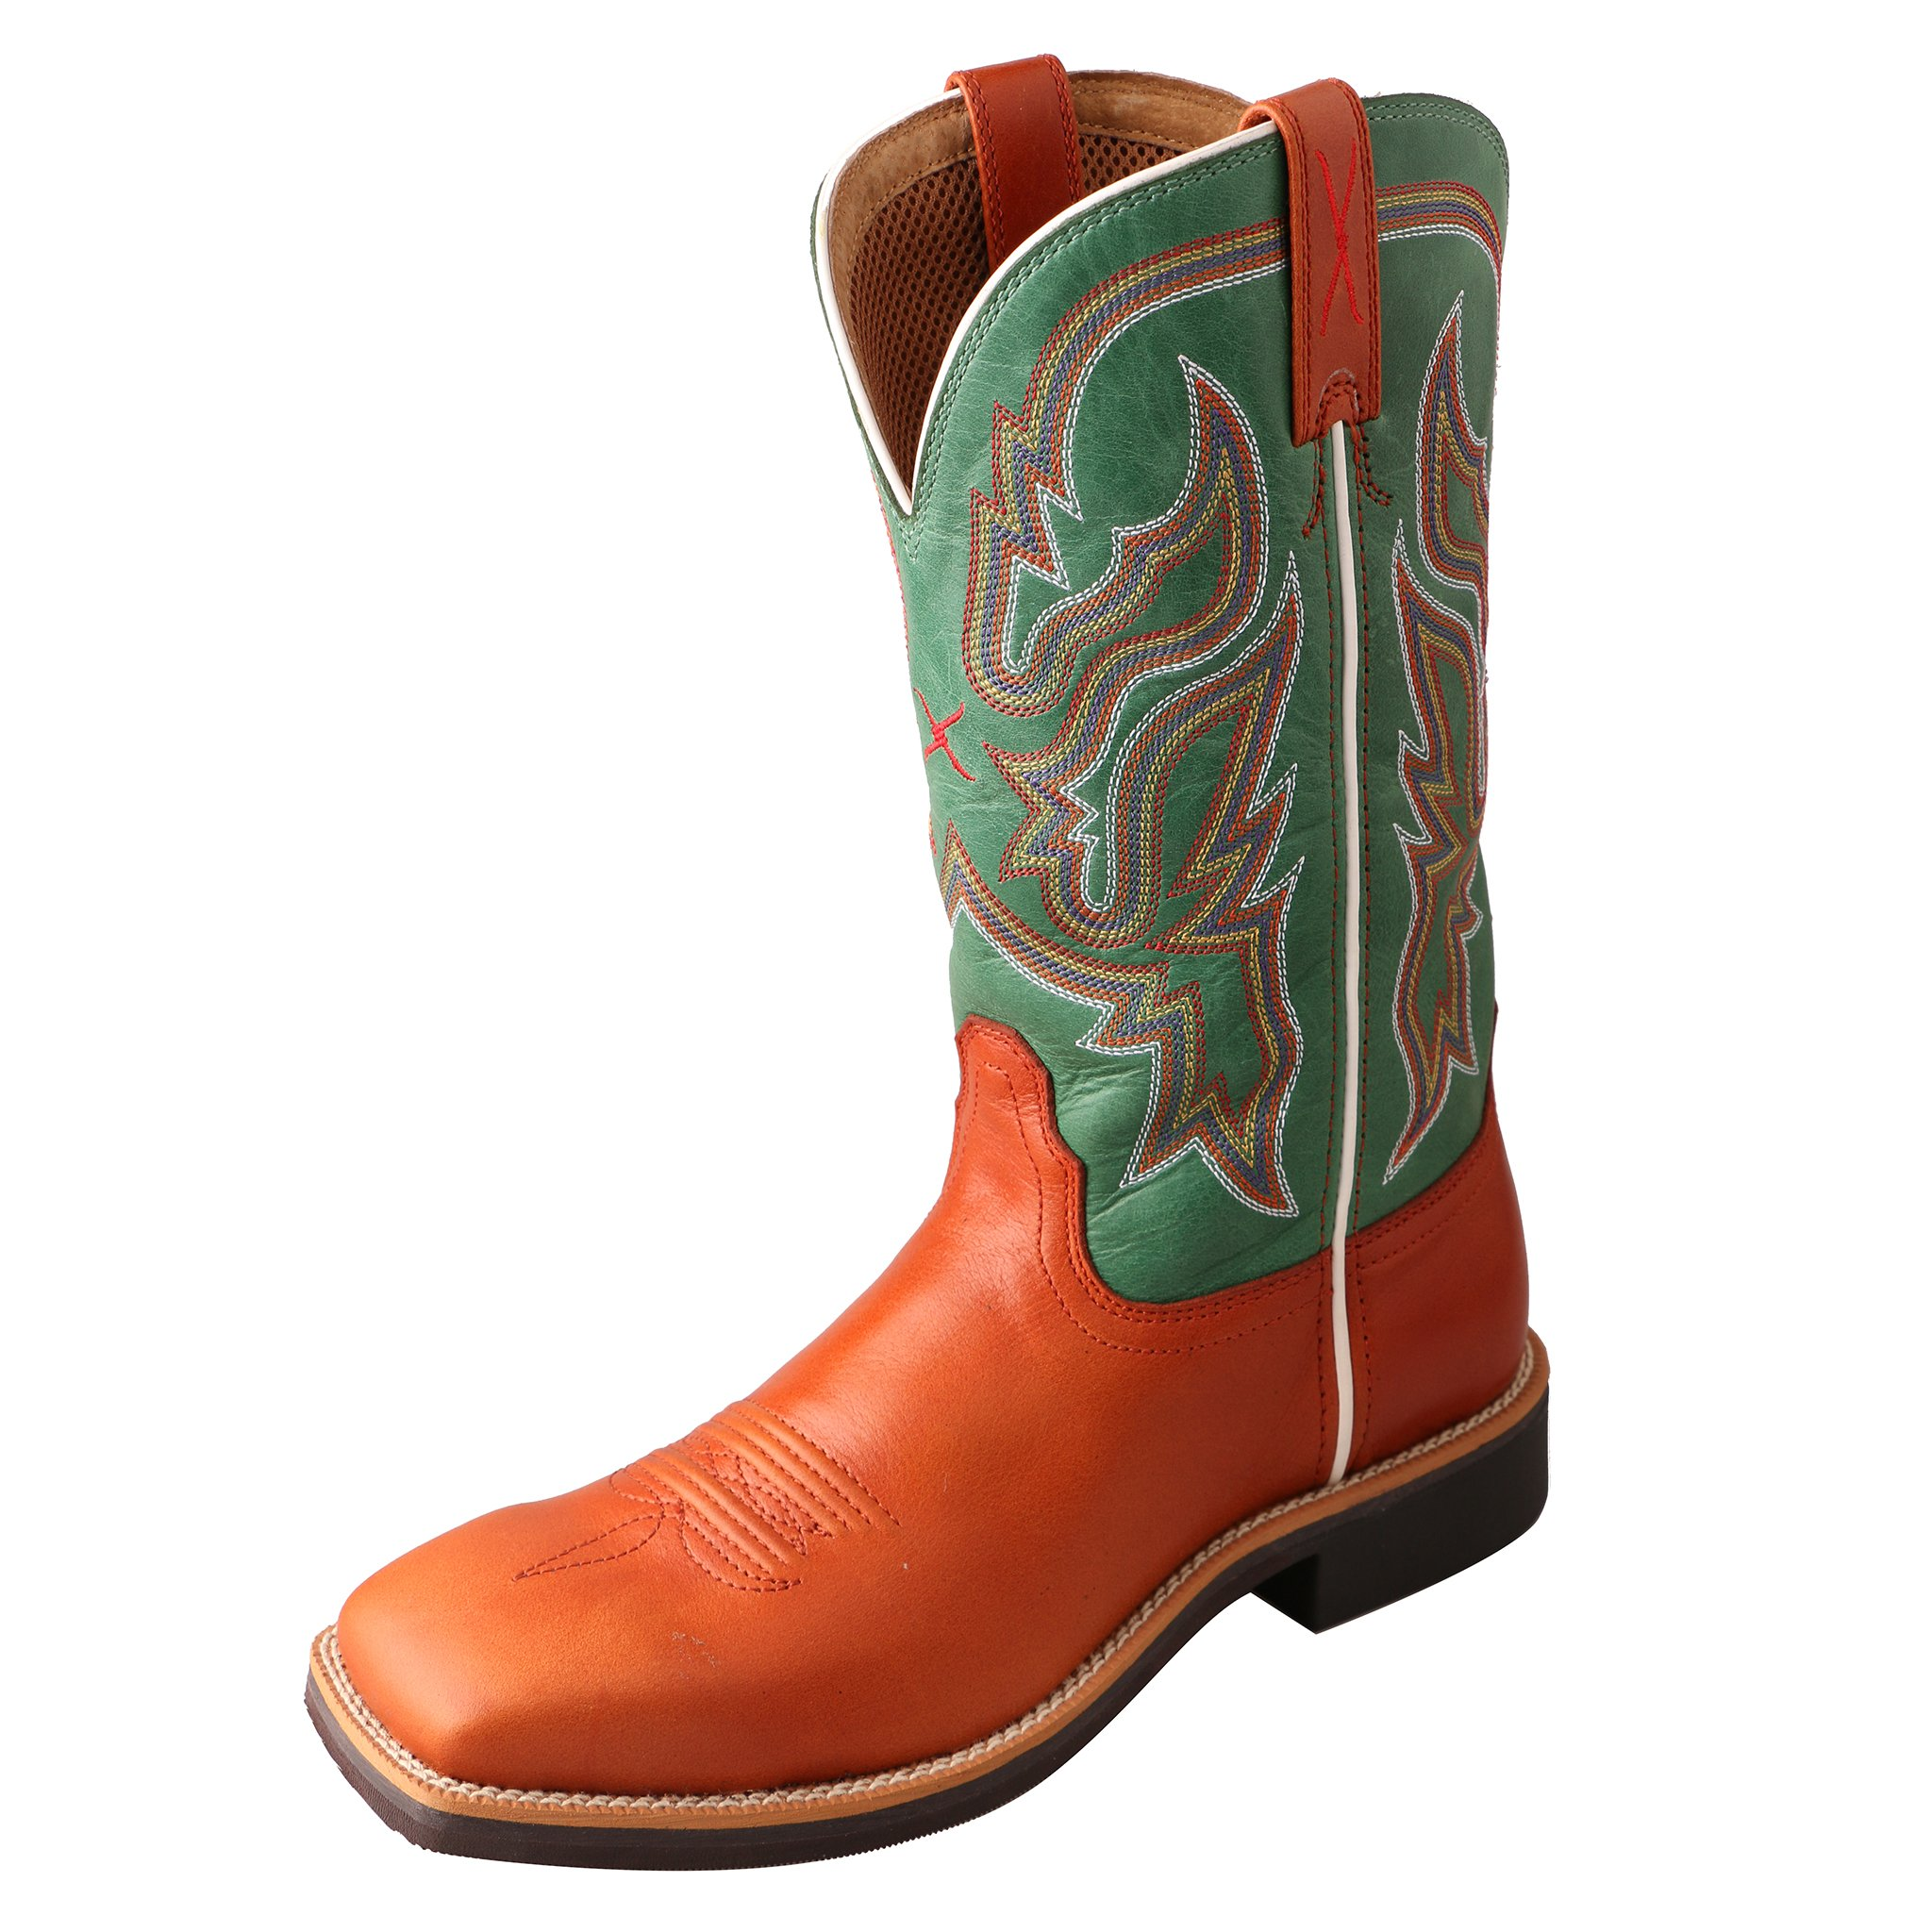 Twisted X Women's Neon Green Top Hand Cowgirl Boot Square Toe Cognac 11 M US